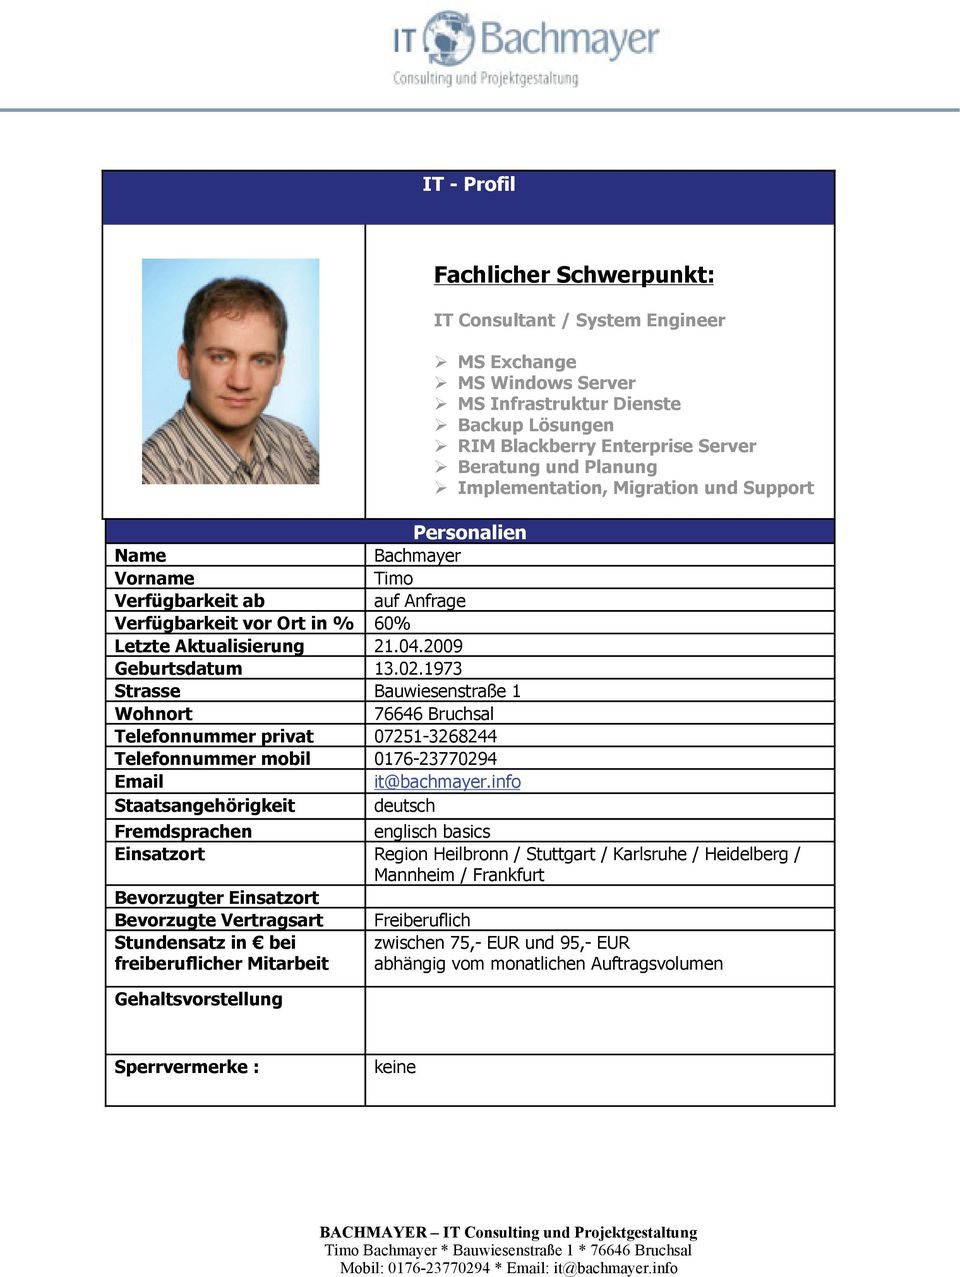 info Staatsangehörigkeit deutsch Fachlicher Schwerpunkt: IT Consultant / MS Exchange MS Windows Server MS Infrastruktur Dienste Backup Lösungen RIM Blackberry Enterprise Server Beratung und Planung